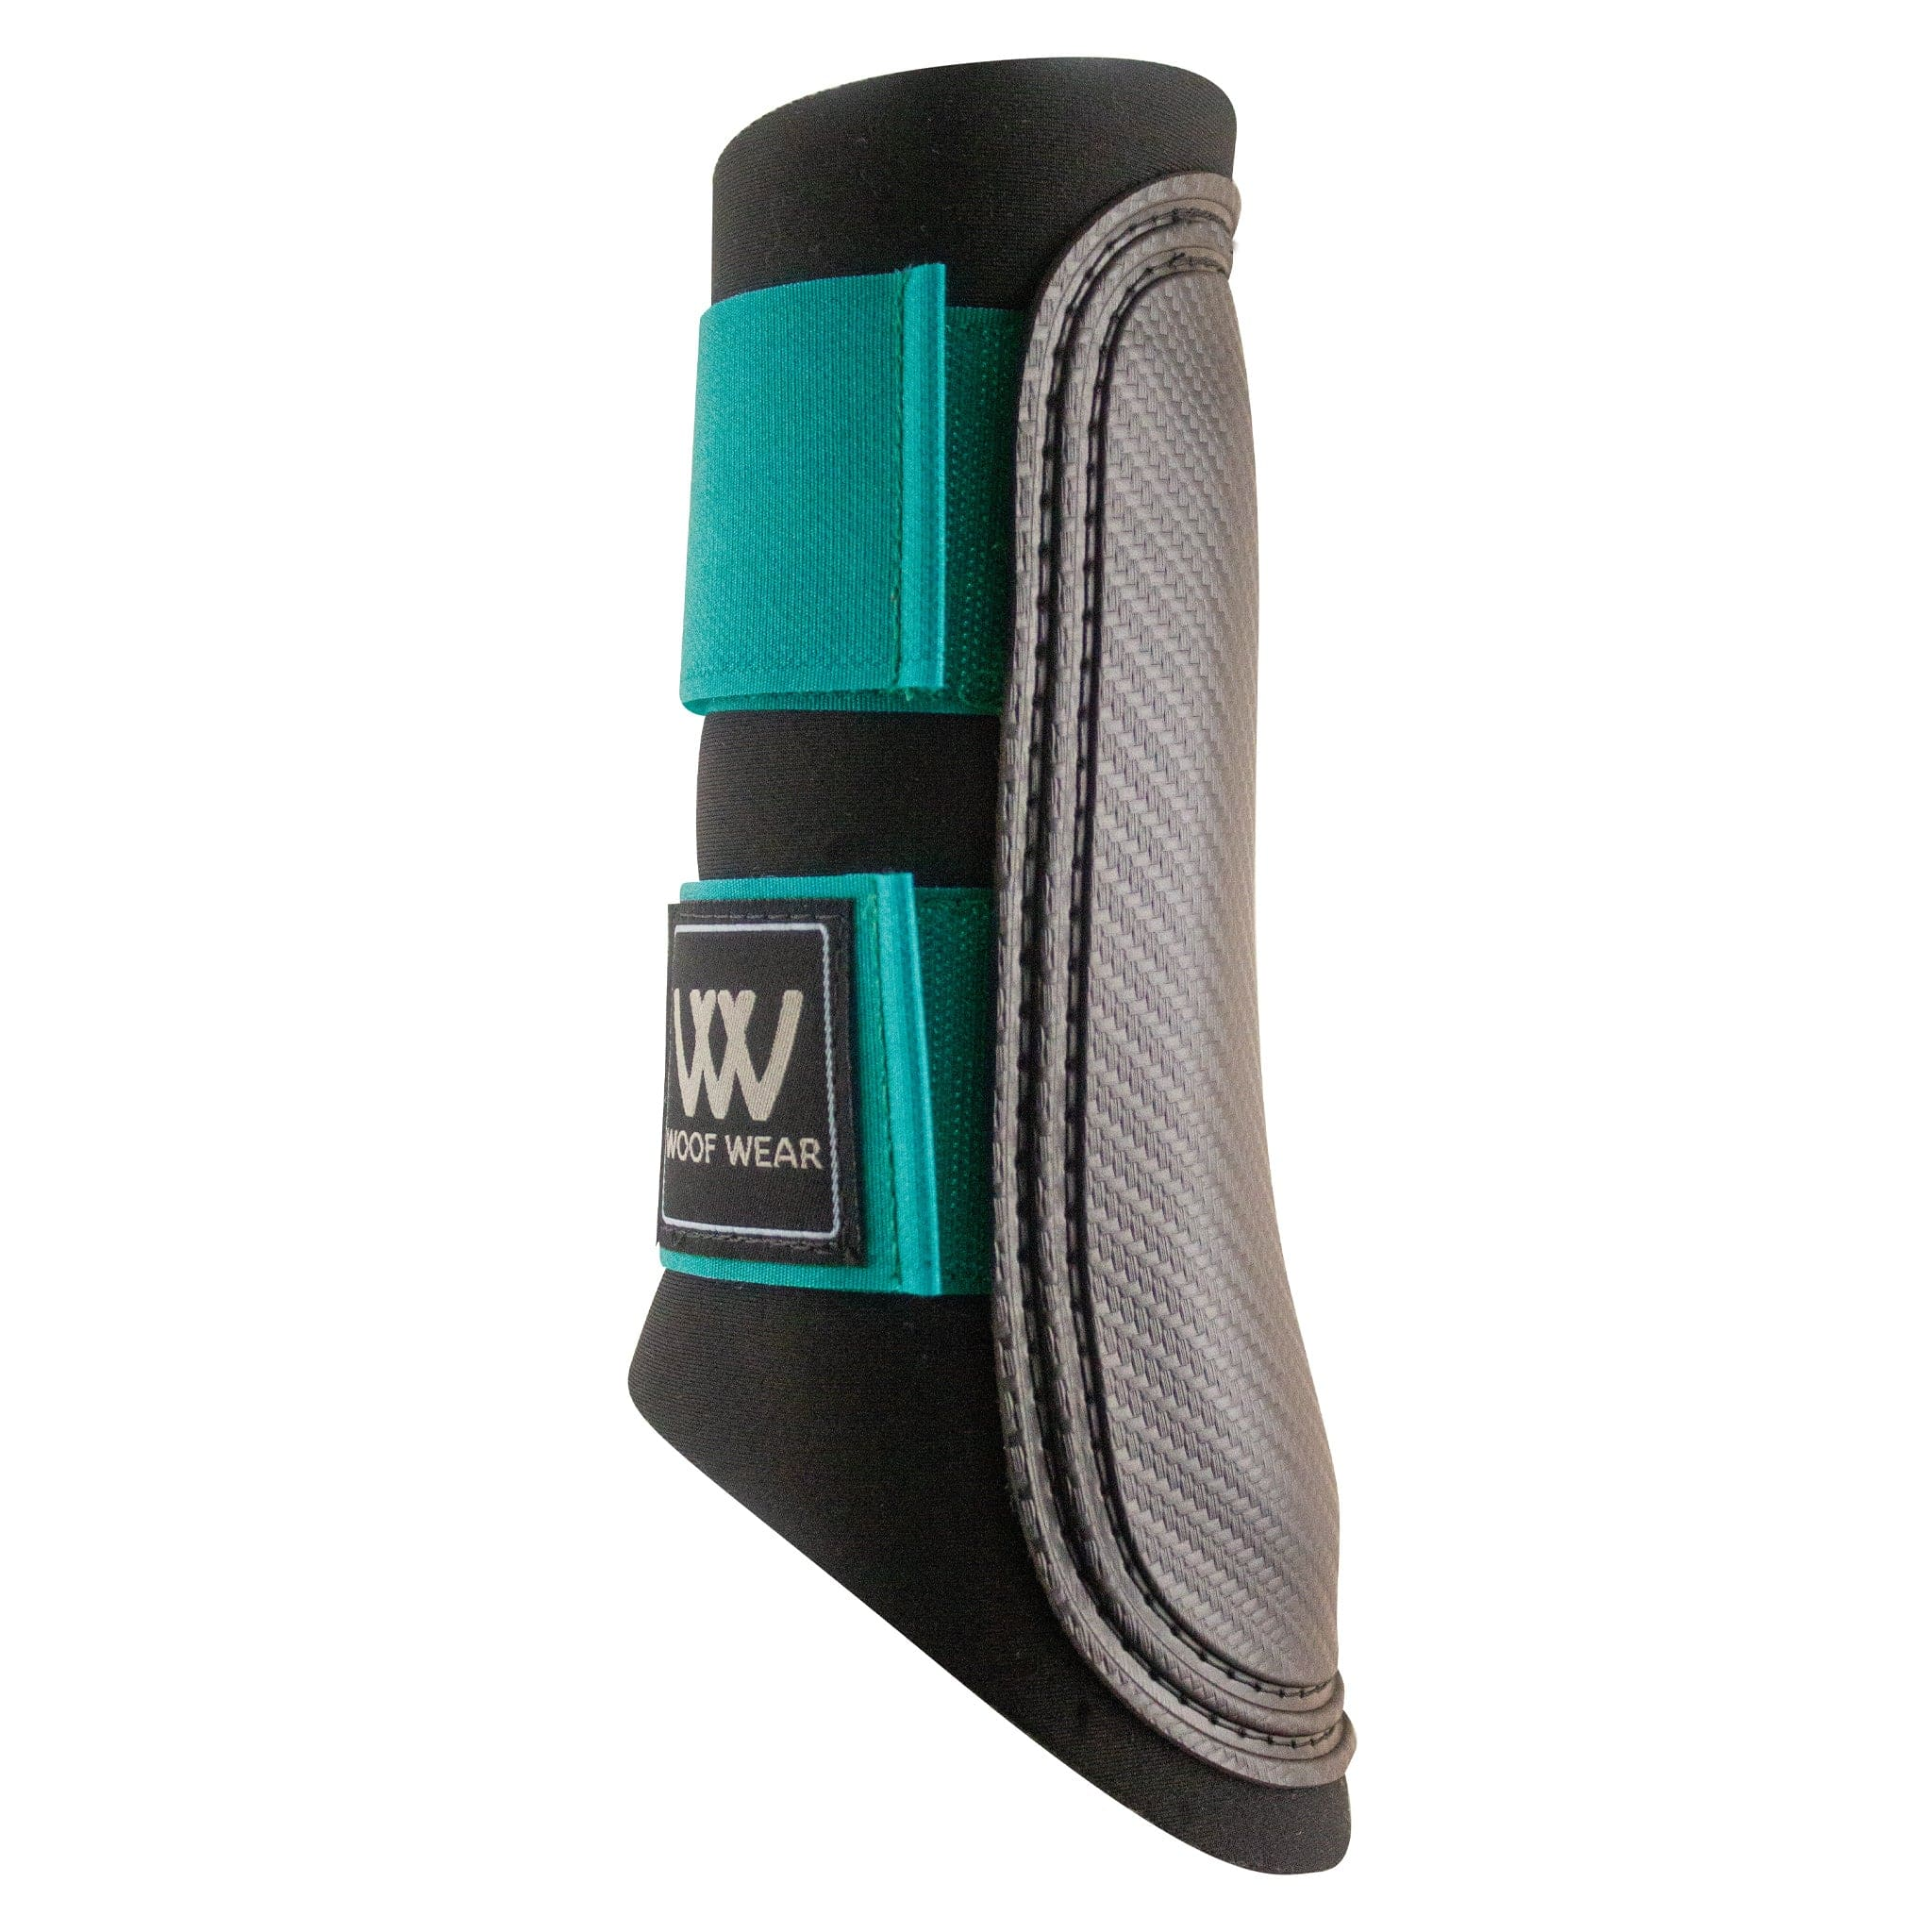 Woof Wear Colour Fusion Club Brushing Boots WB0003 Ocean